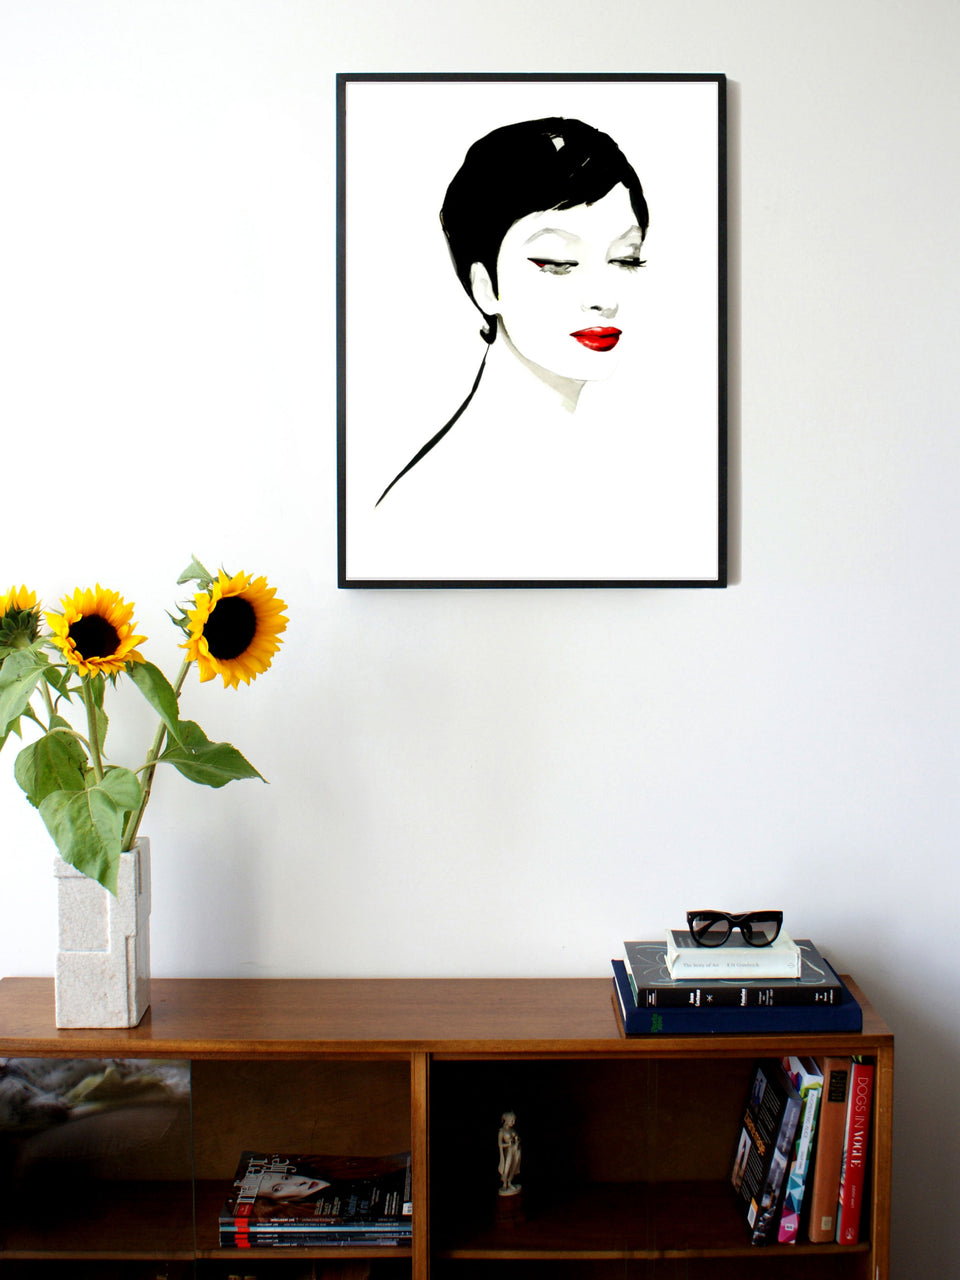 Fashion illustration print of Geisha Eyes by Sjoukje Bierma - portrait of woman - 60 x 80 cm framed